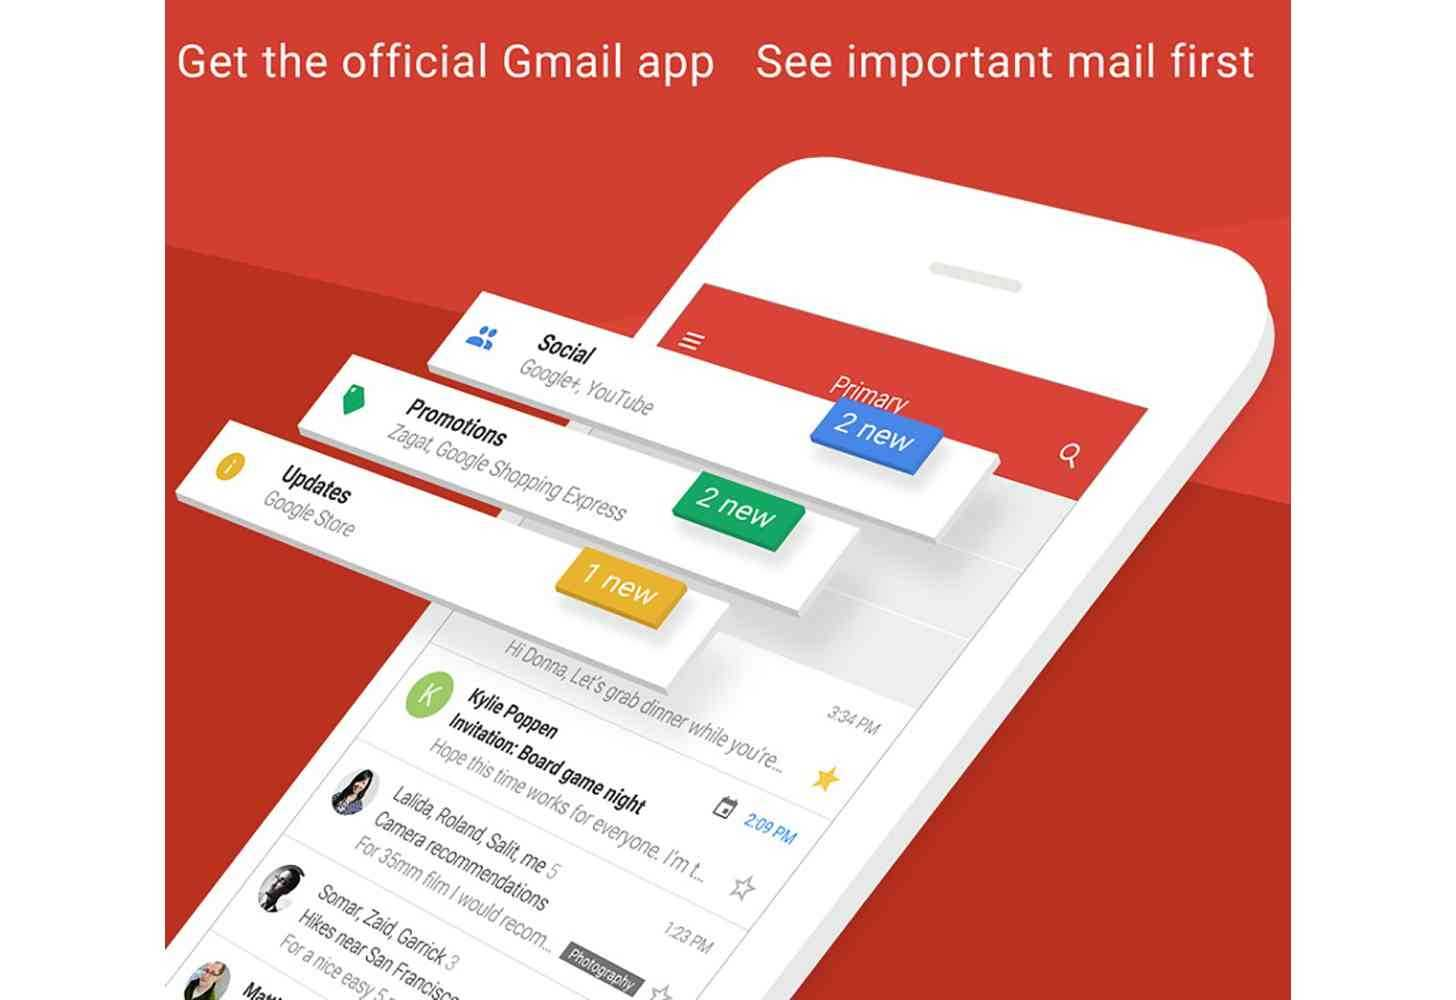 Google Announces Major Updates to Gmail For iOS